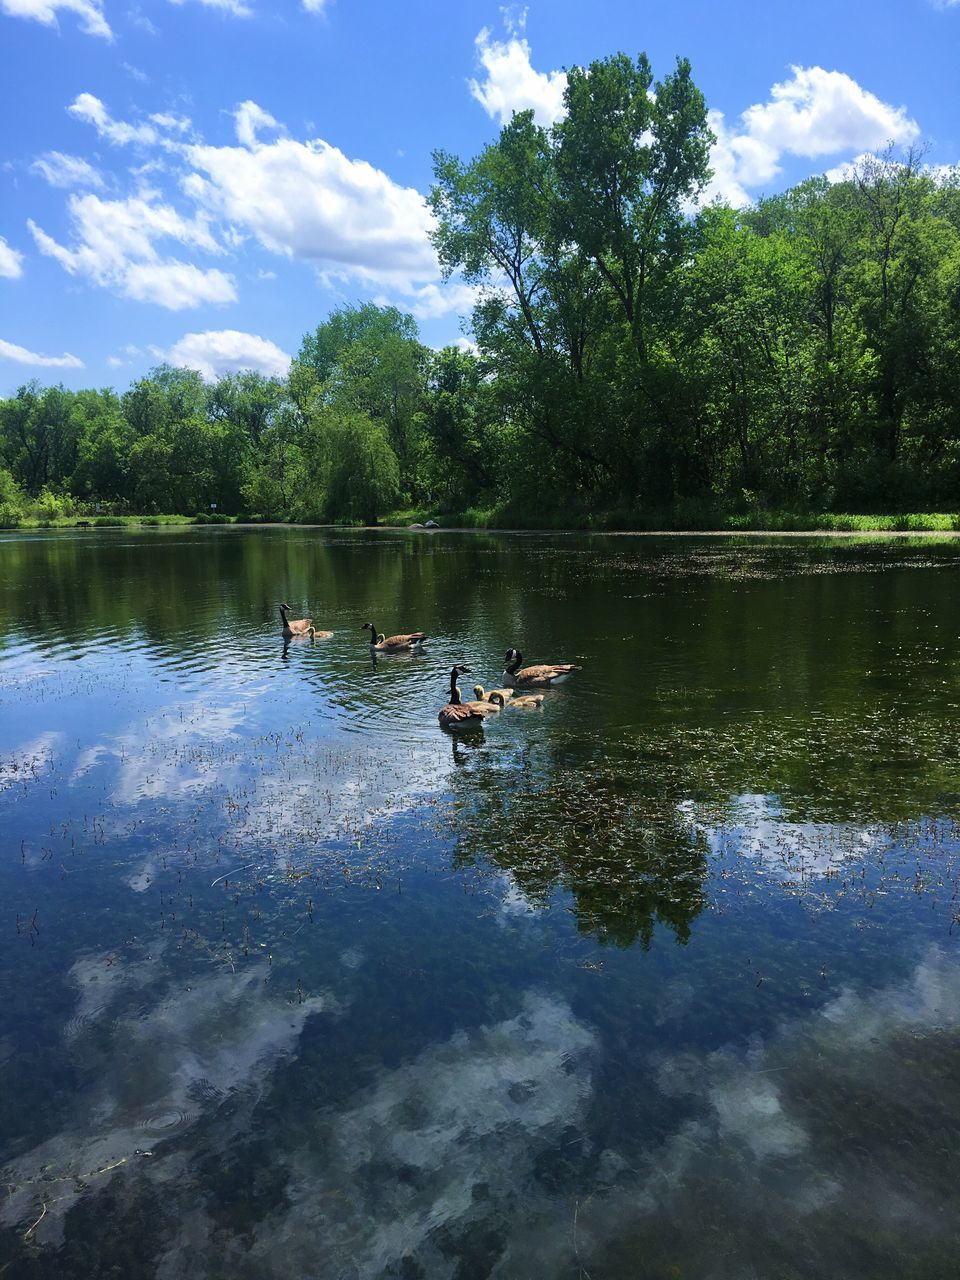 lake, water, nature, cloud - sky, tree, sky, reflection, day, beauty in nature, outdoors, tranquility, growth, scenics, swimming, animal themes, bird, no people